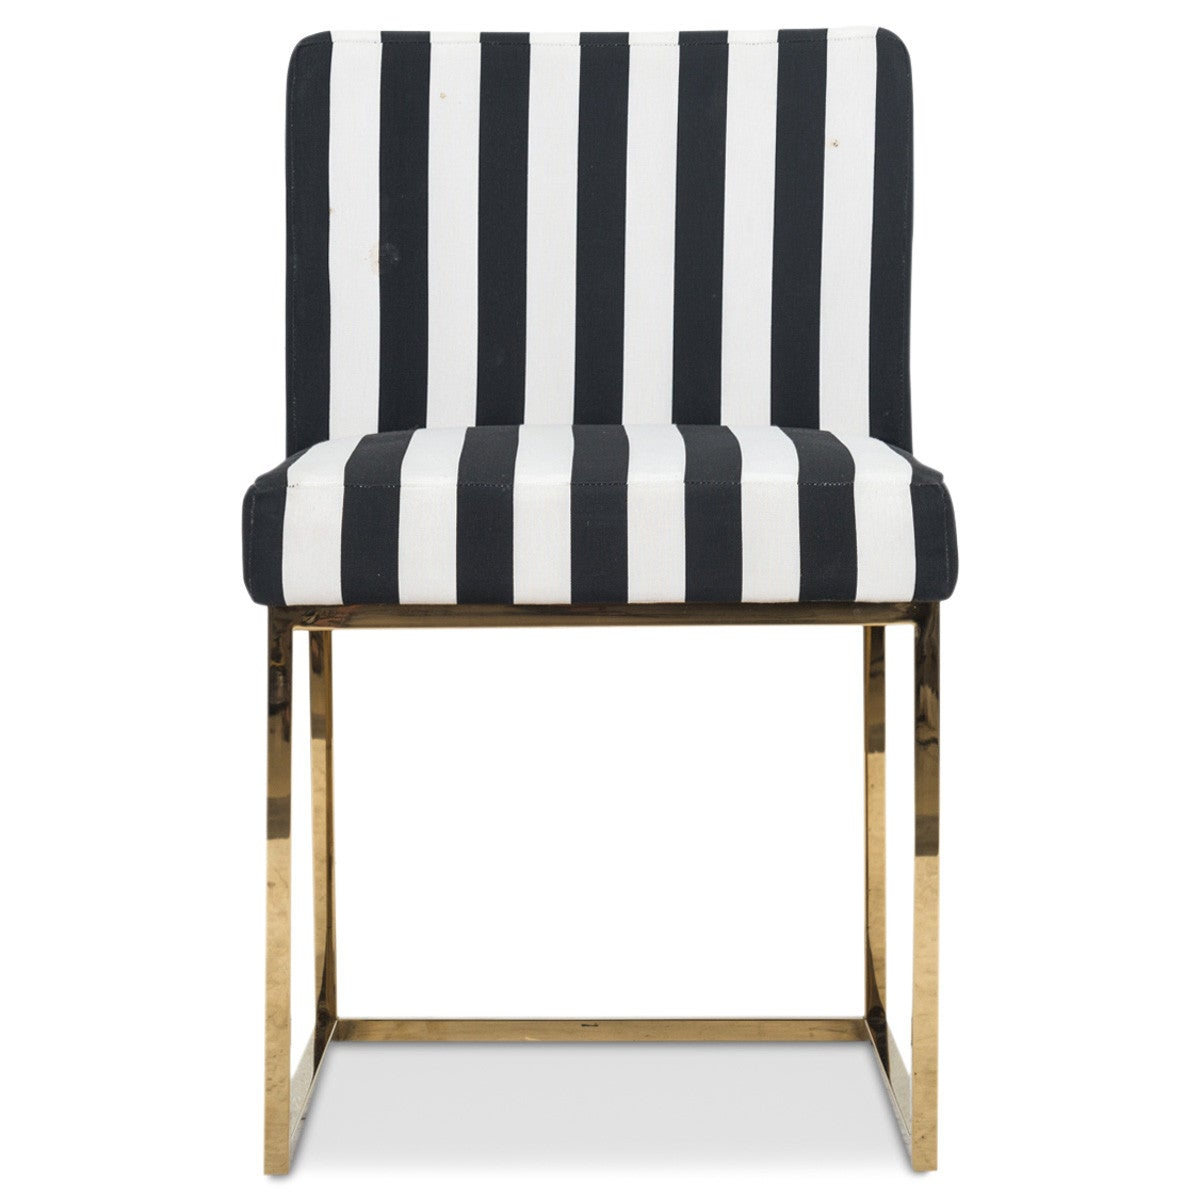 Marvelous 007 Dining Chair In Black And White Stripes